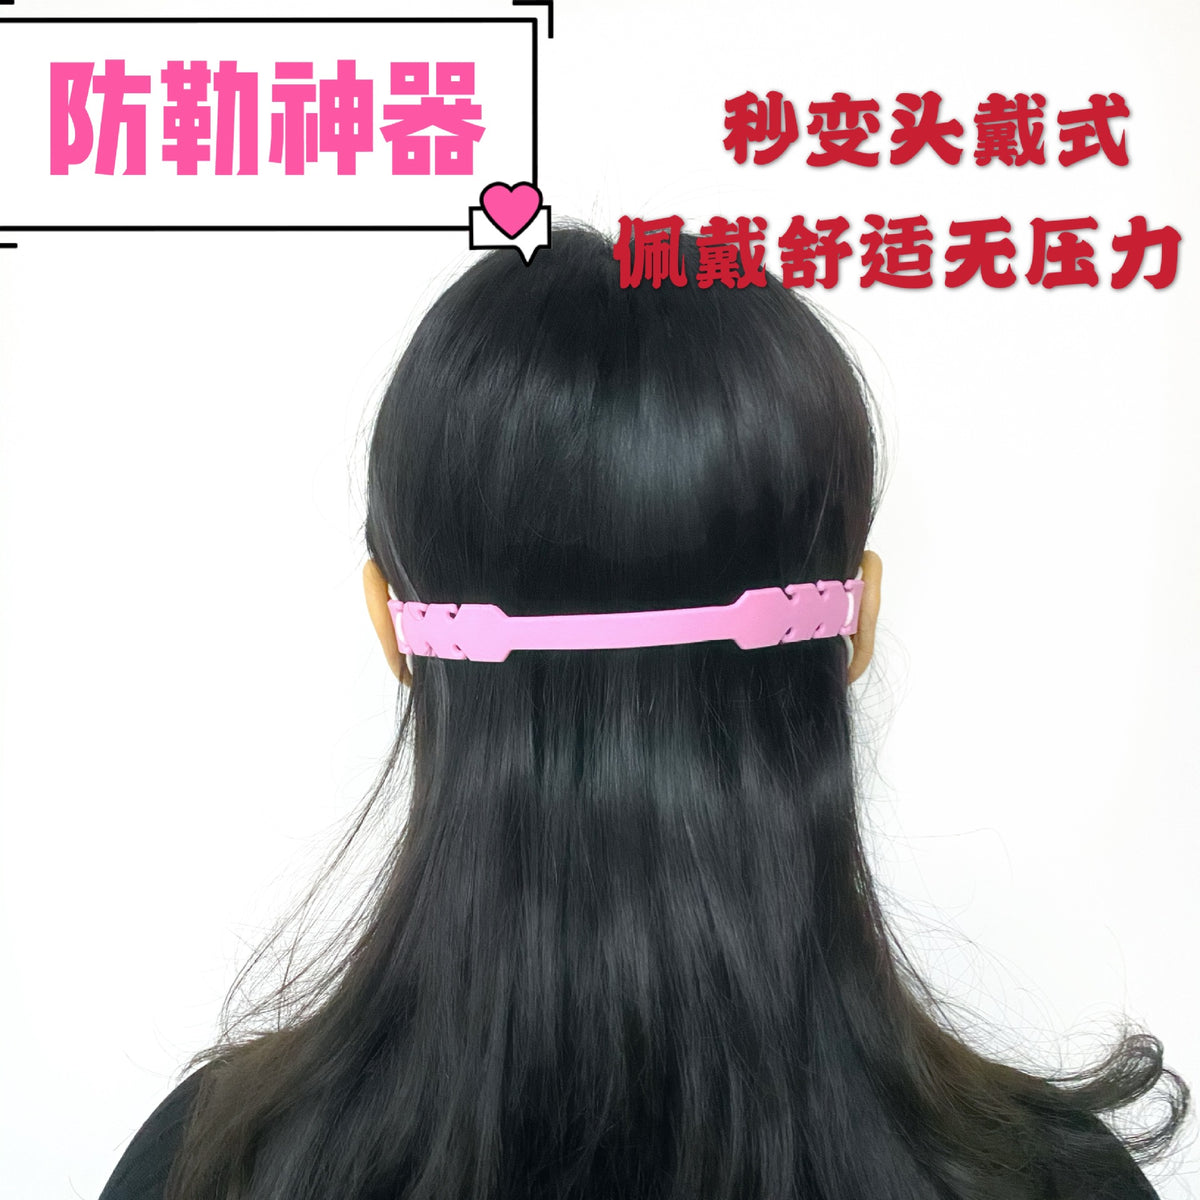 Adjustable Ear Strap Hook Headband for Face Masks (Each)